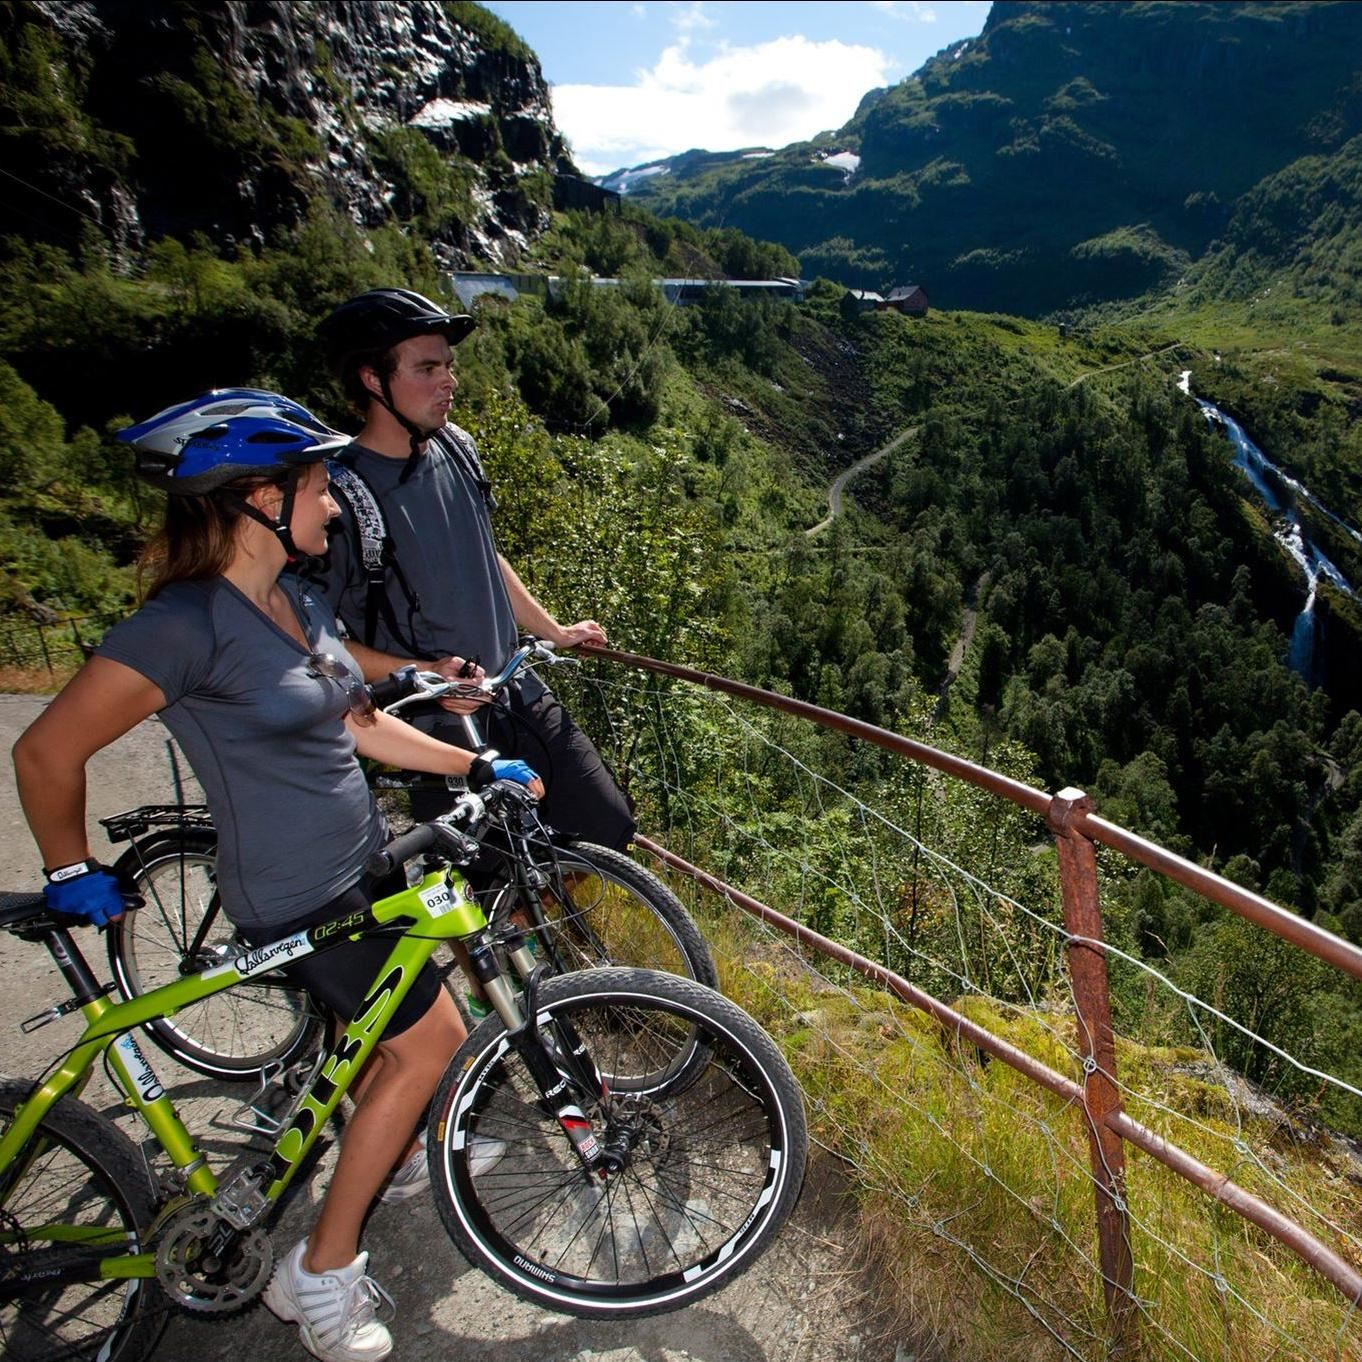 Flåm bike rental